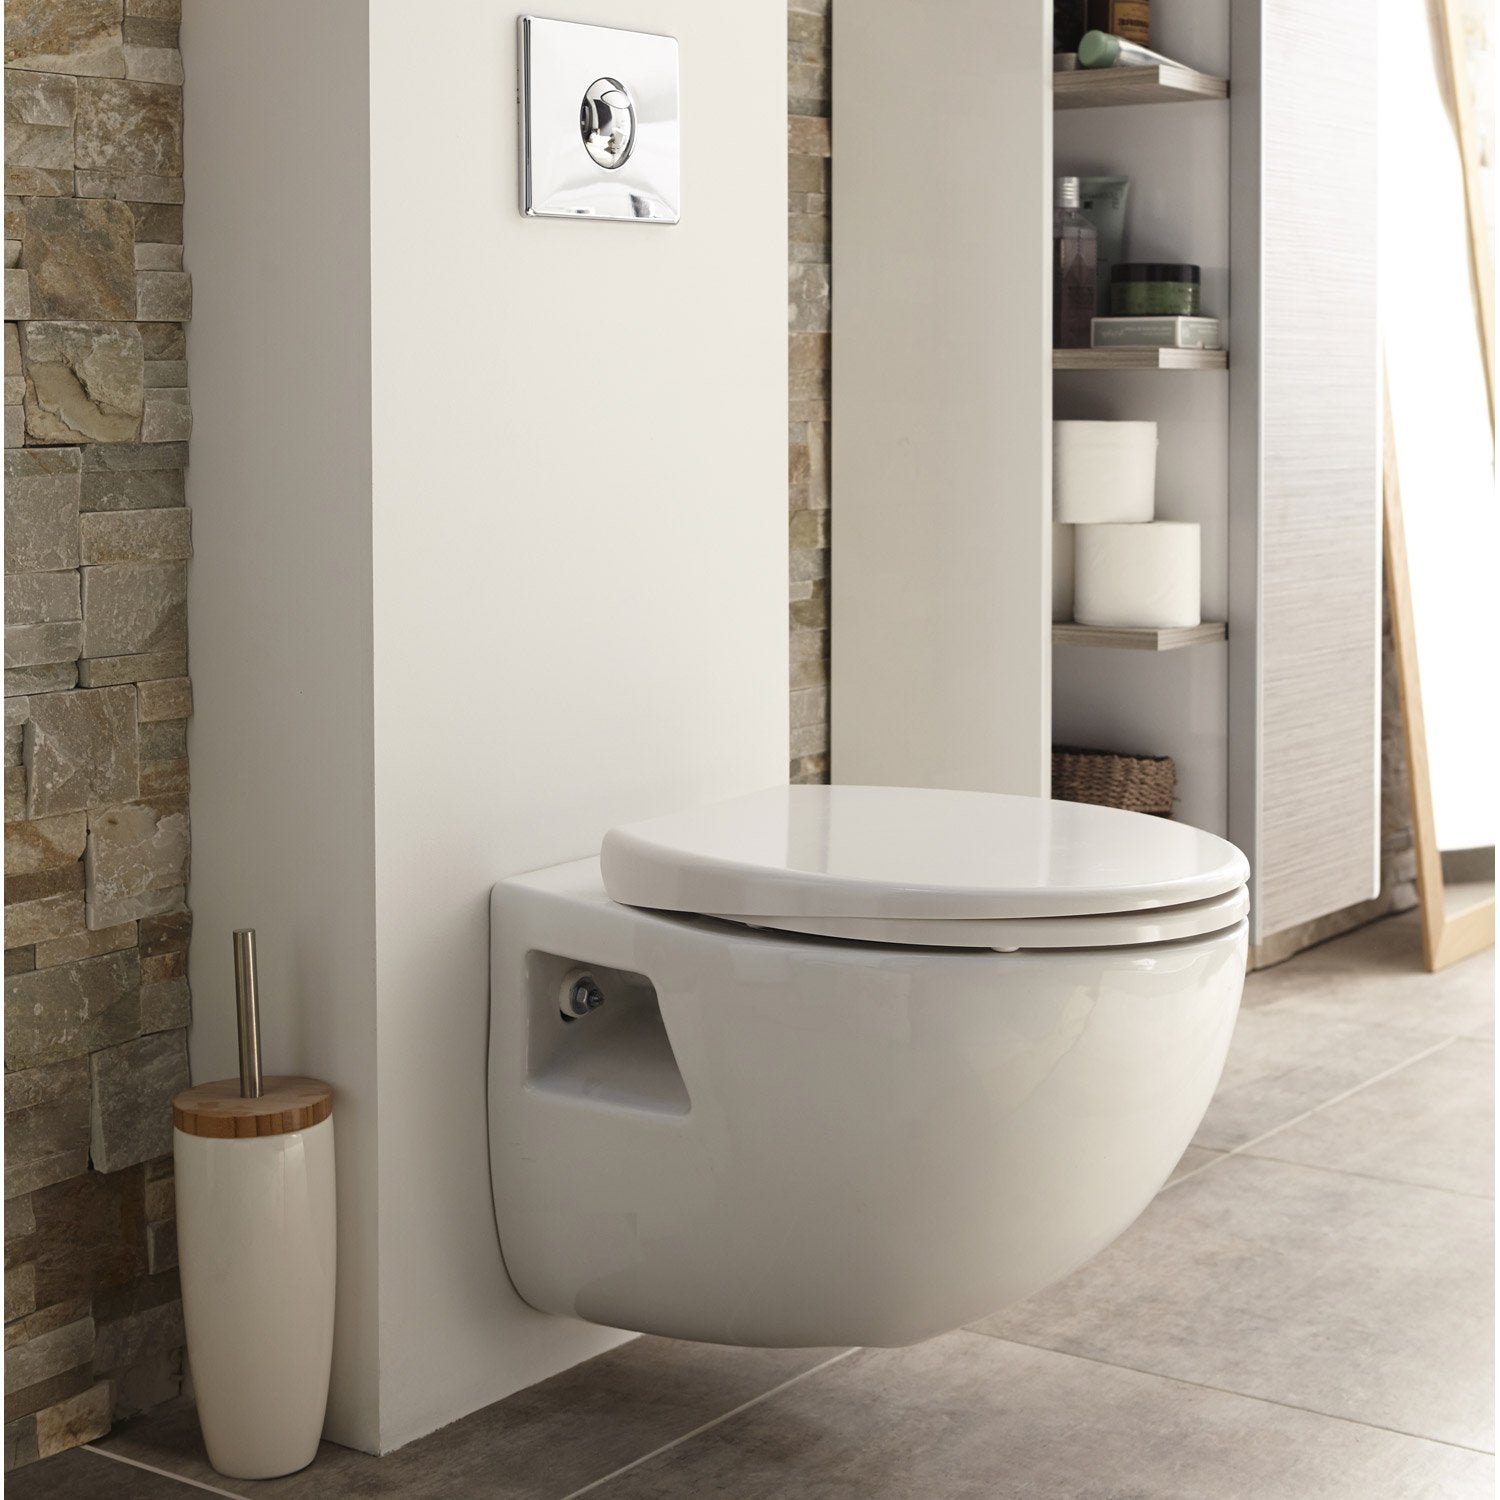 Meuble wc suspendu leroy merlin maison design - Tapas wc leroy merlin ...